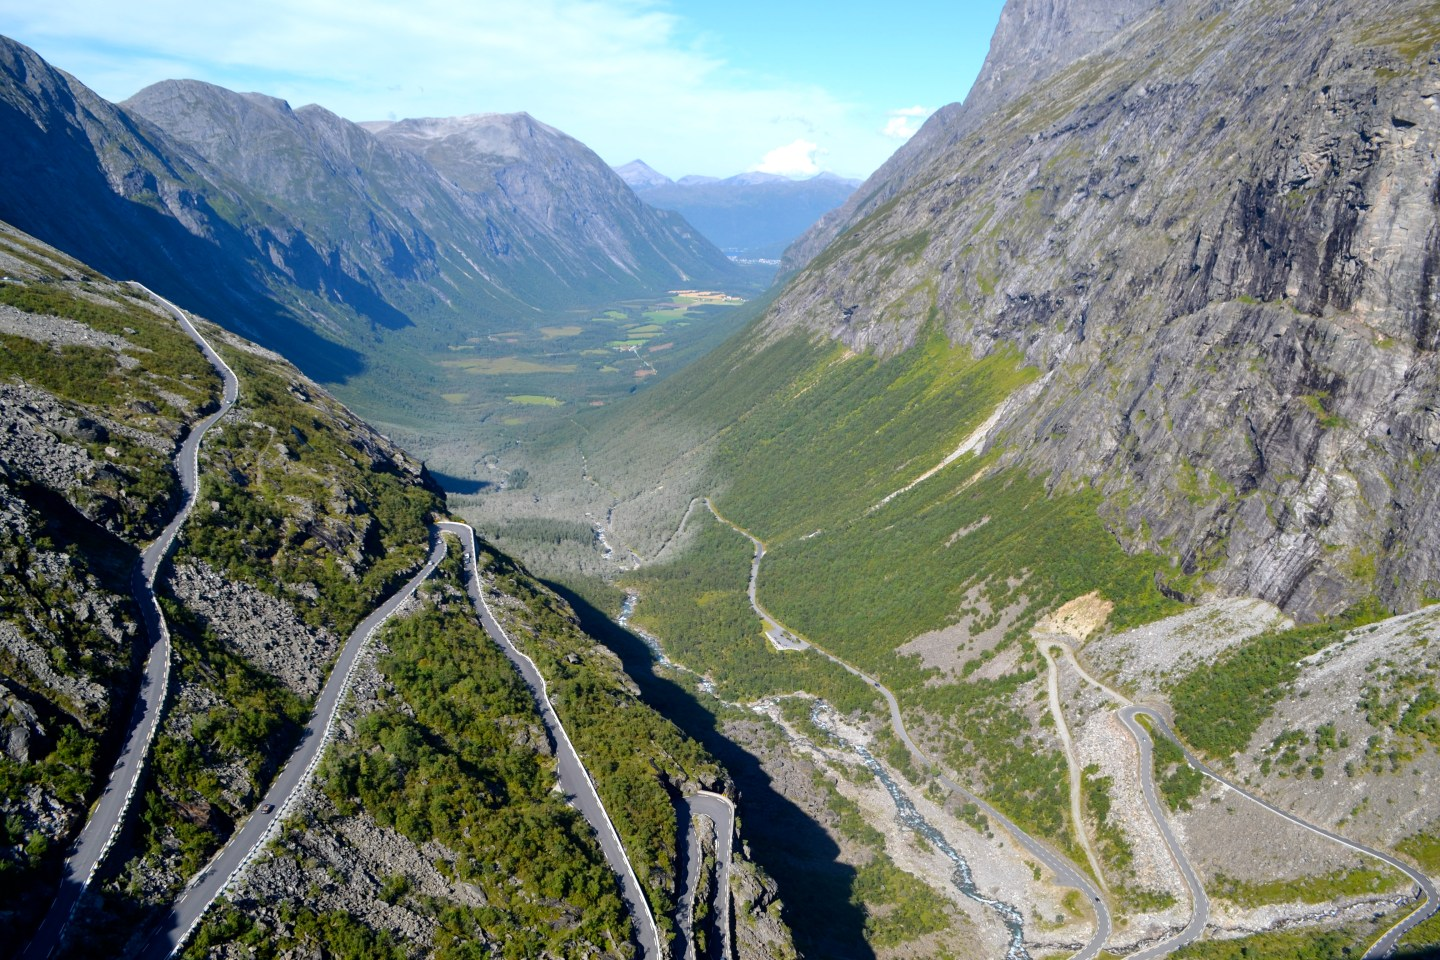 Lisa eats Norway – The hairy road to Geirangerfjord